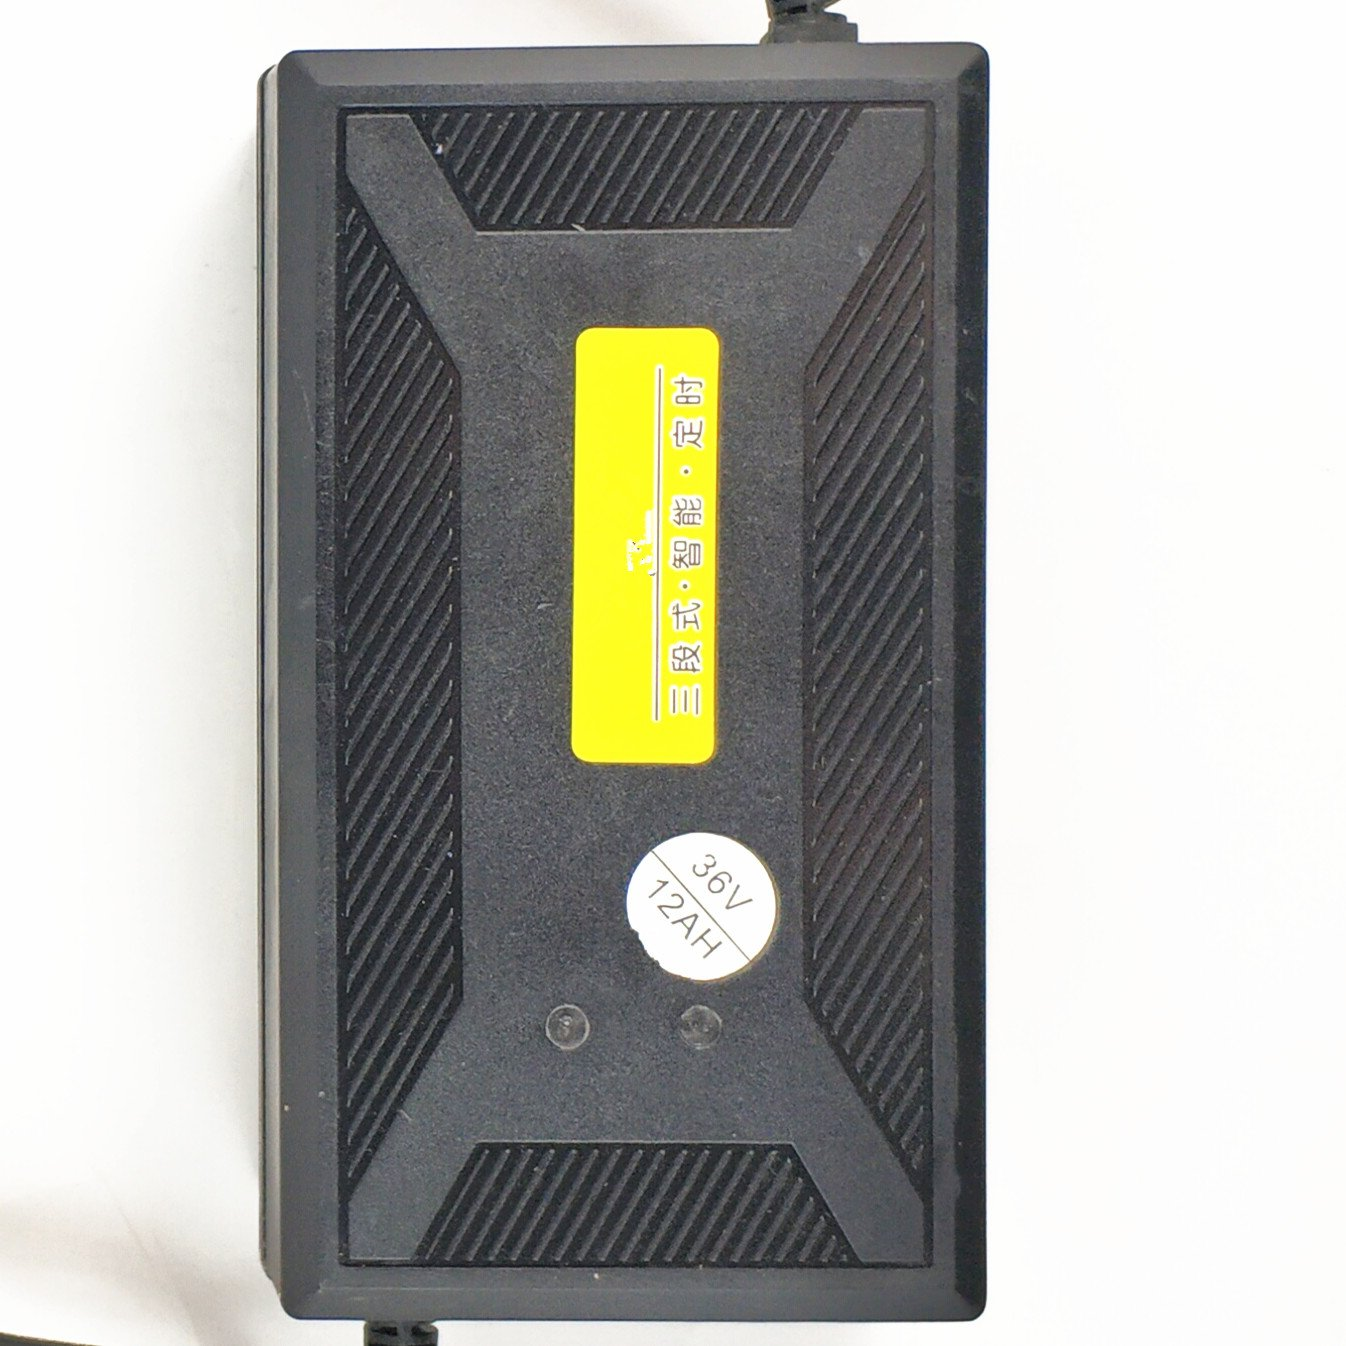 36V 1.8 Amp Battery Charger for Electric Bikes Scooters